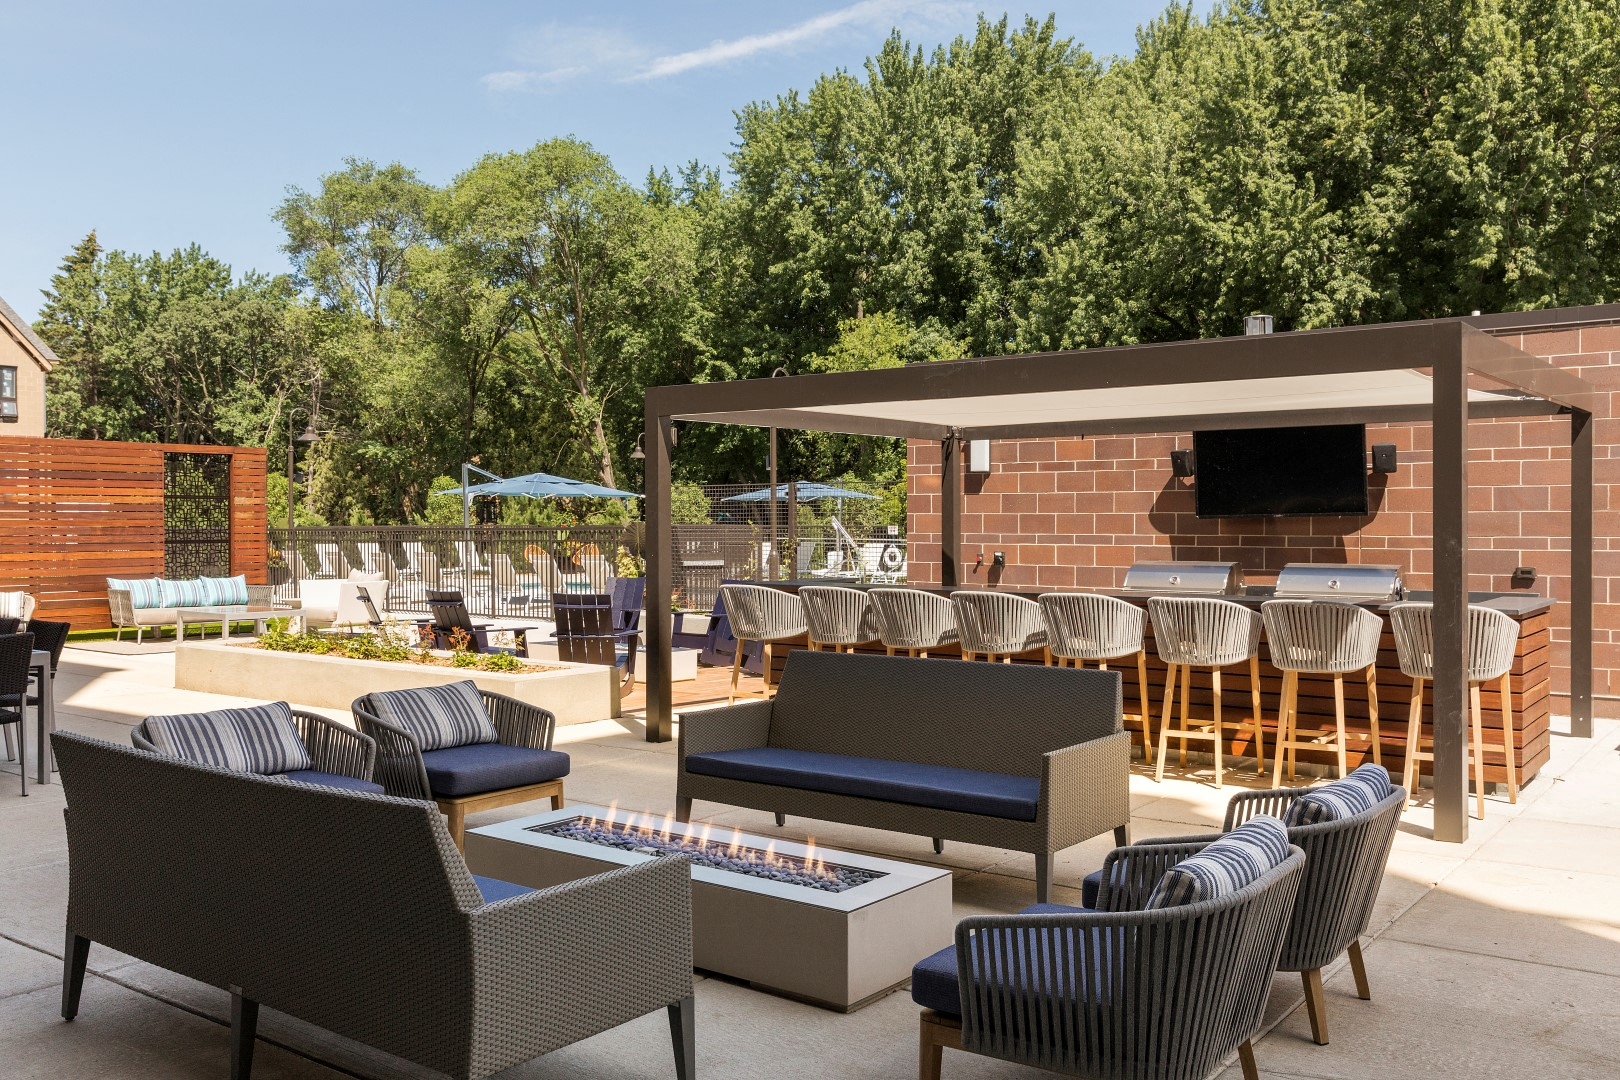 The McMillan Shoreview Exterior Sun Deck Pool Patio Grilling Area